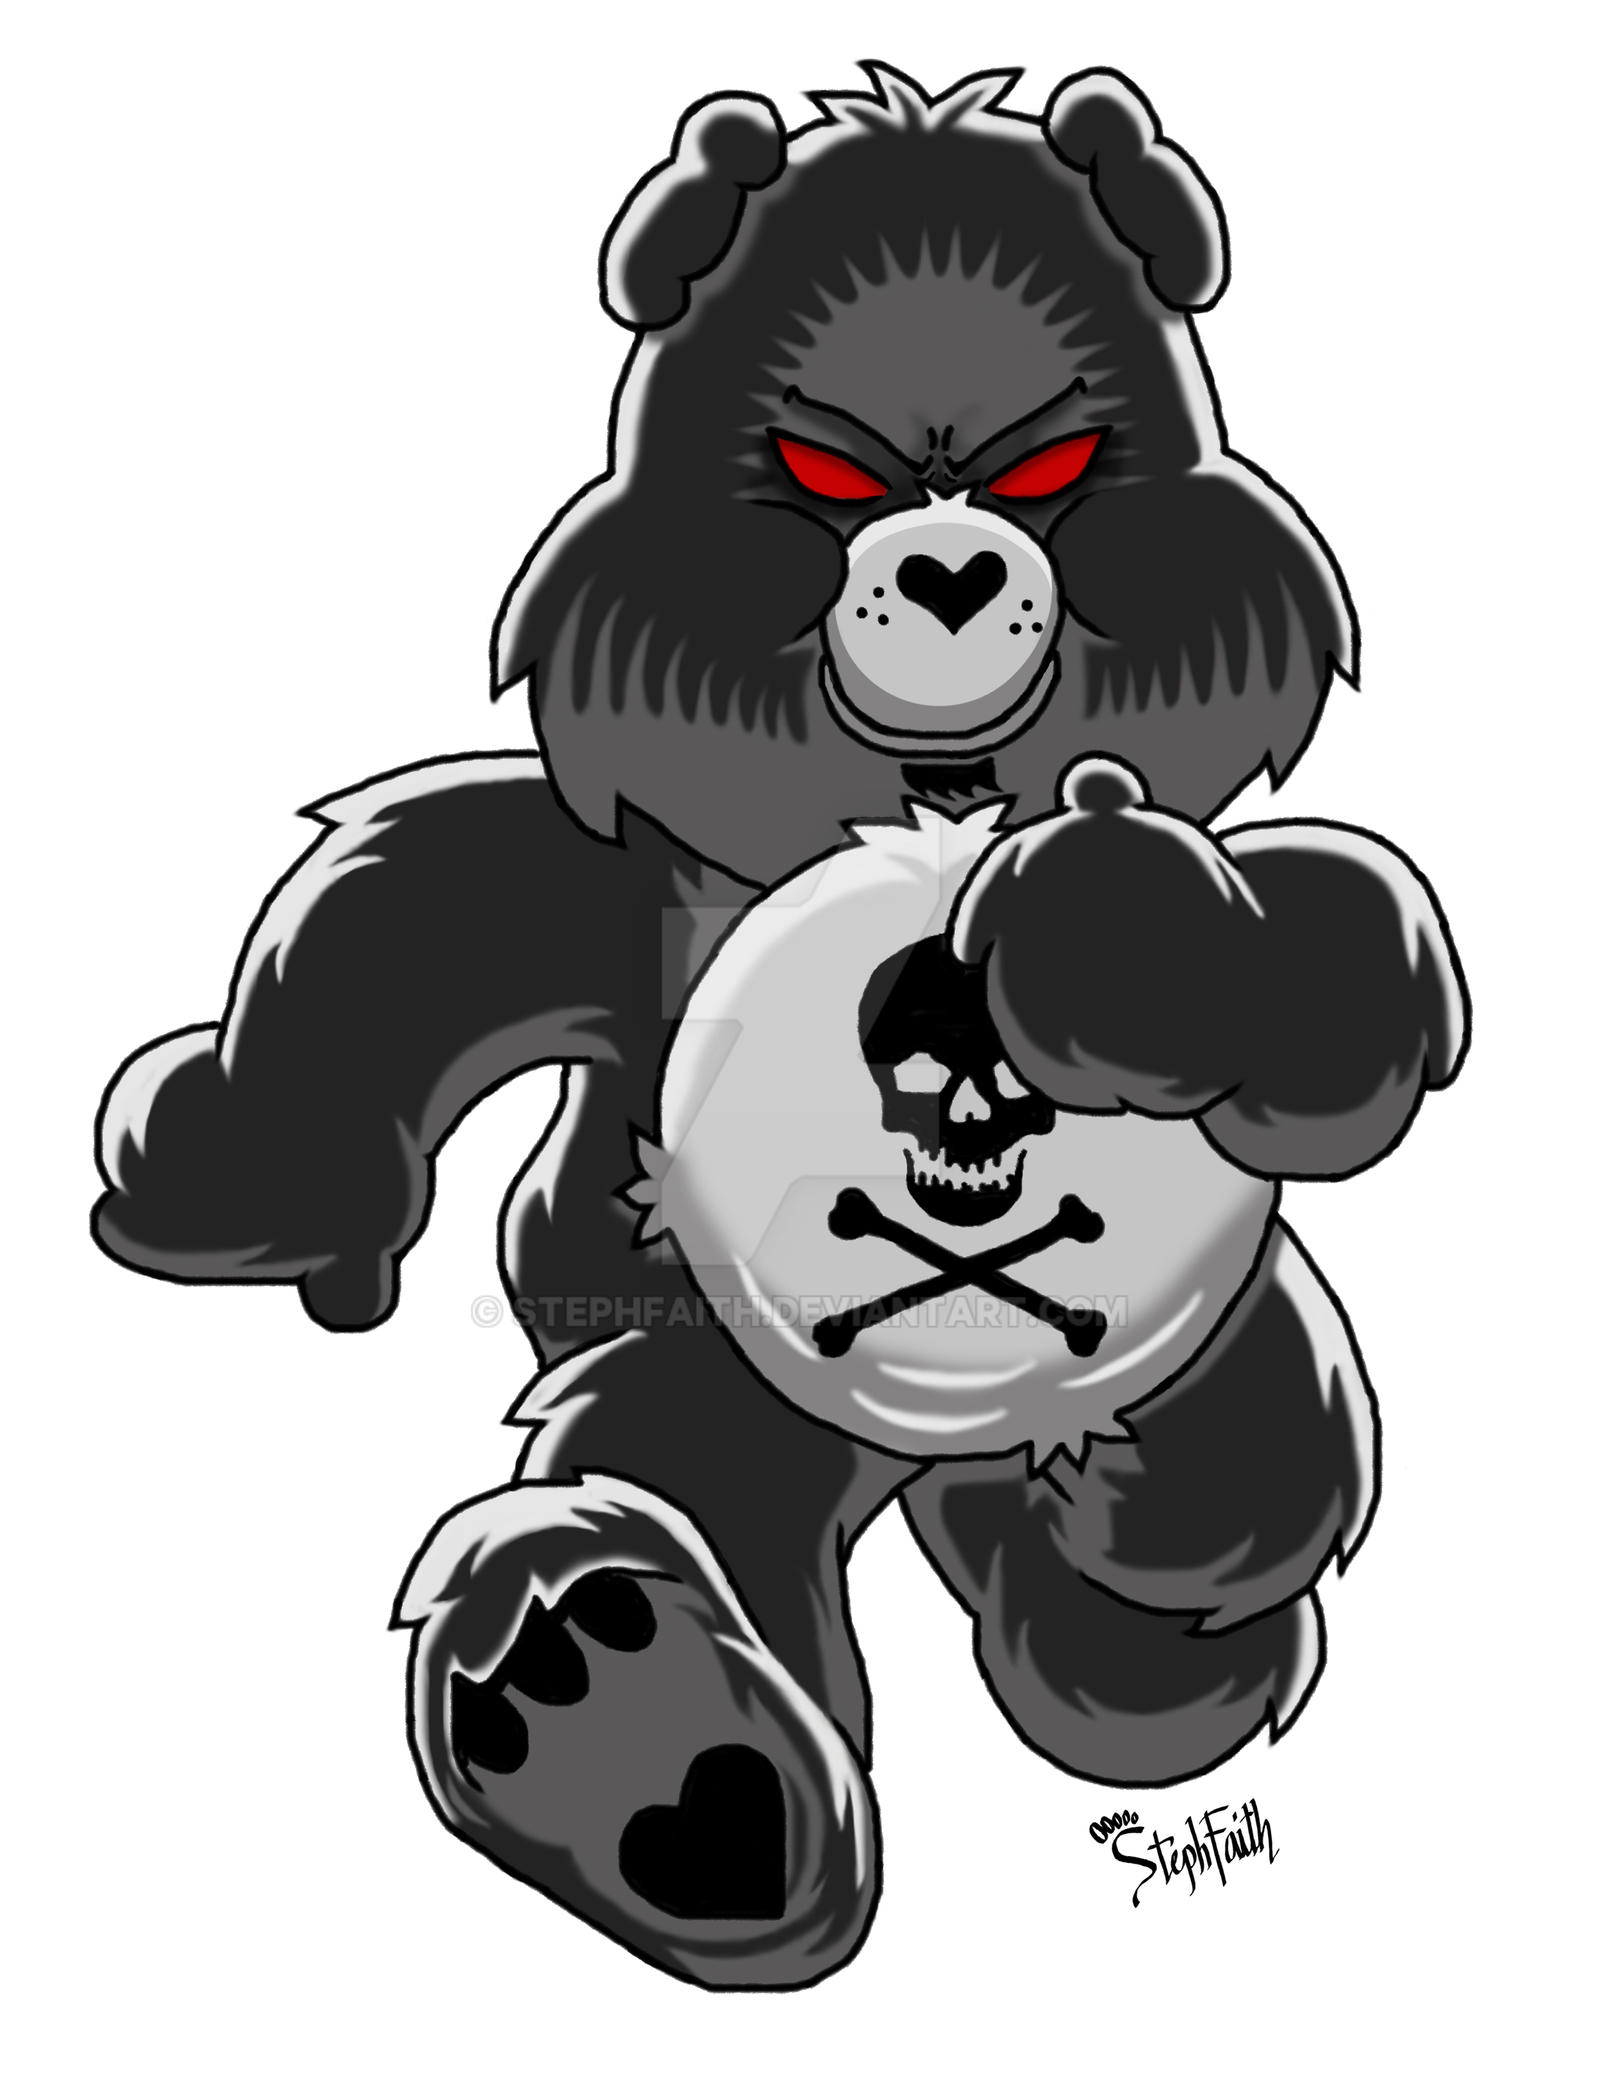 care bears gets toxic by stephfaith on deviantart hug clip art for kids hug clipart black and white